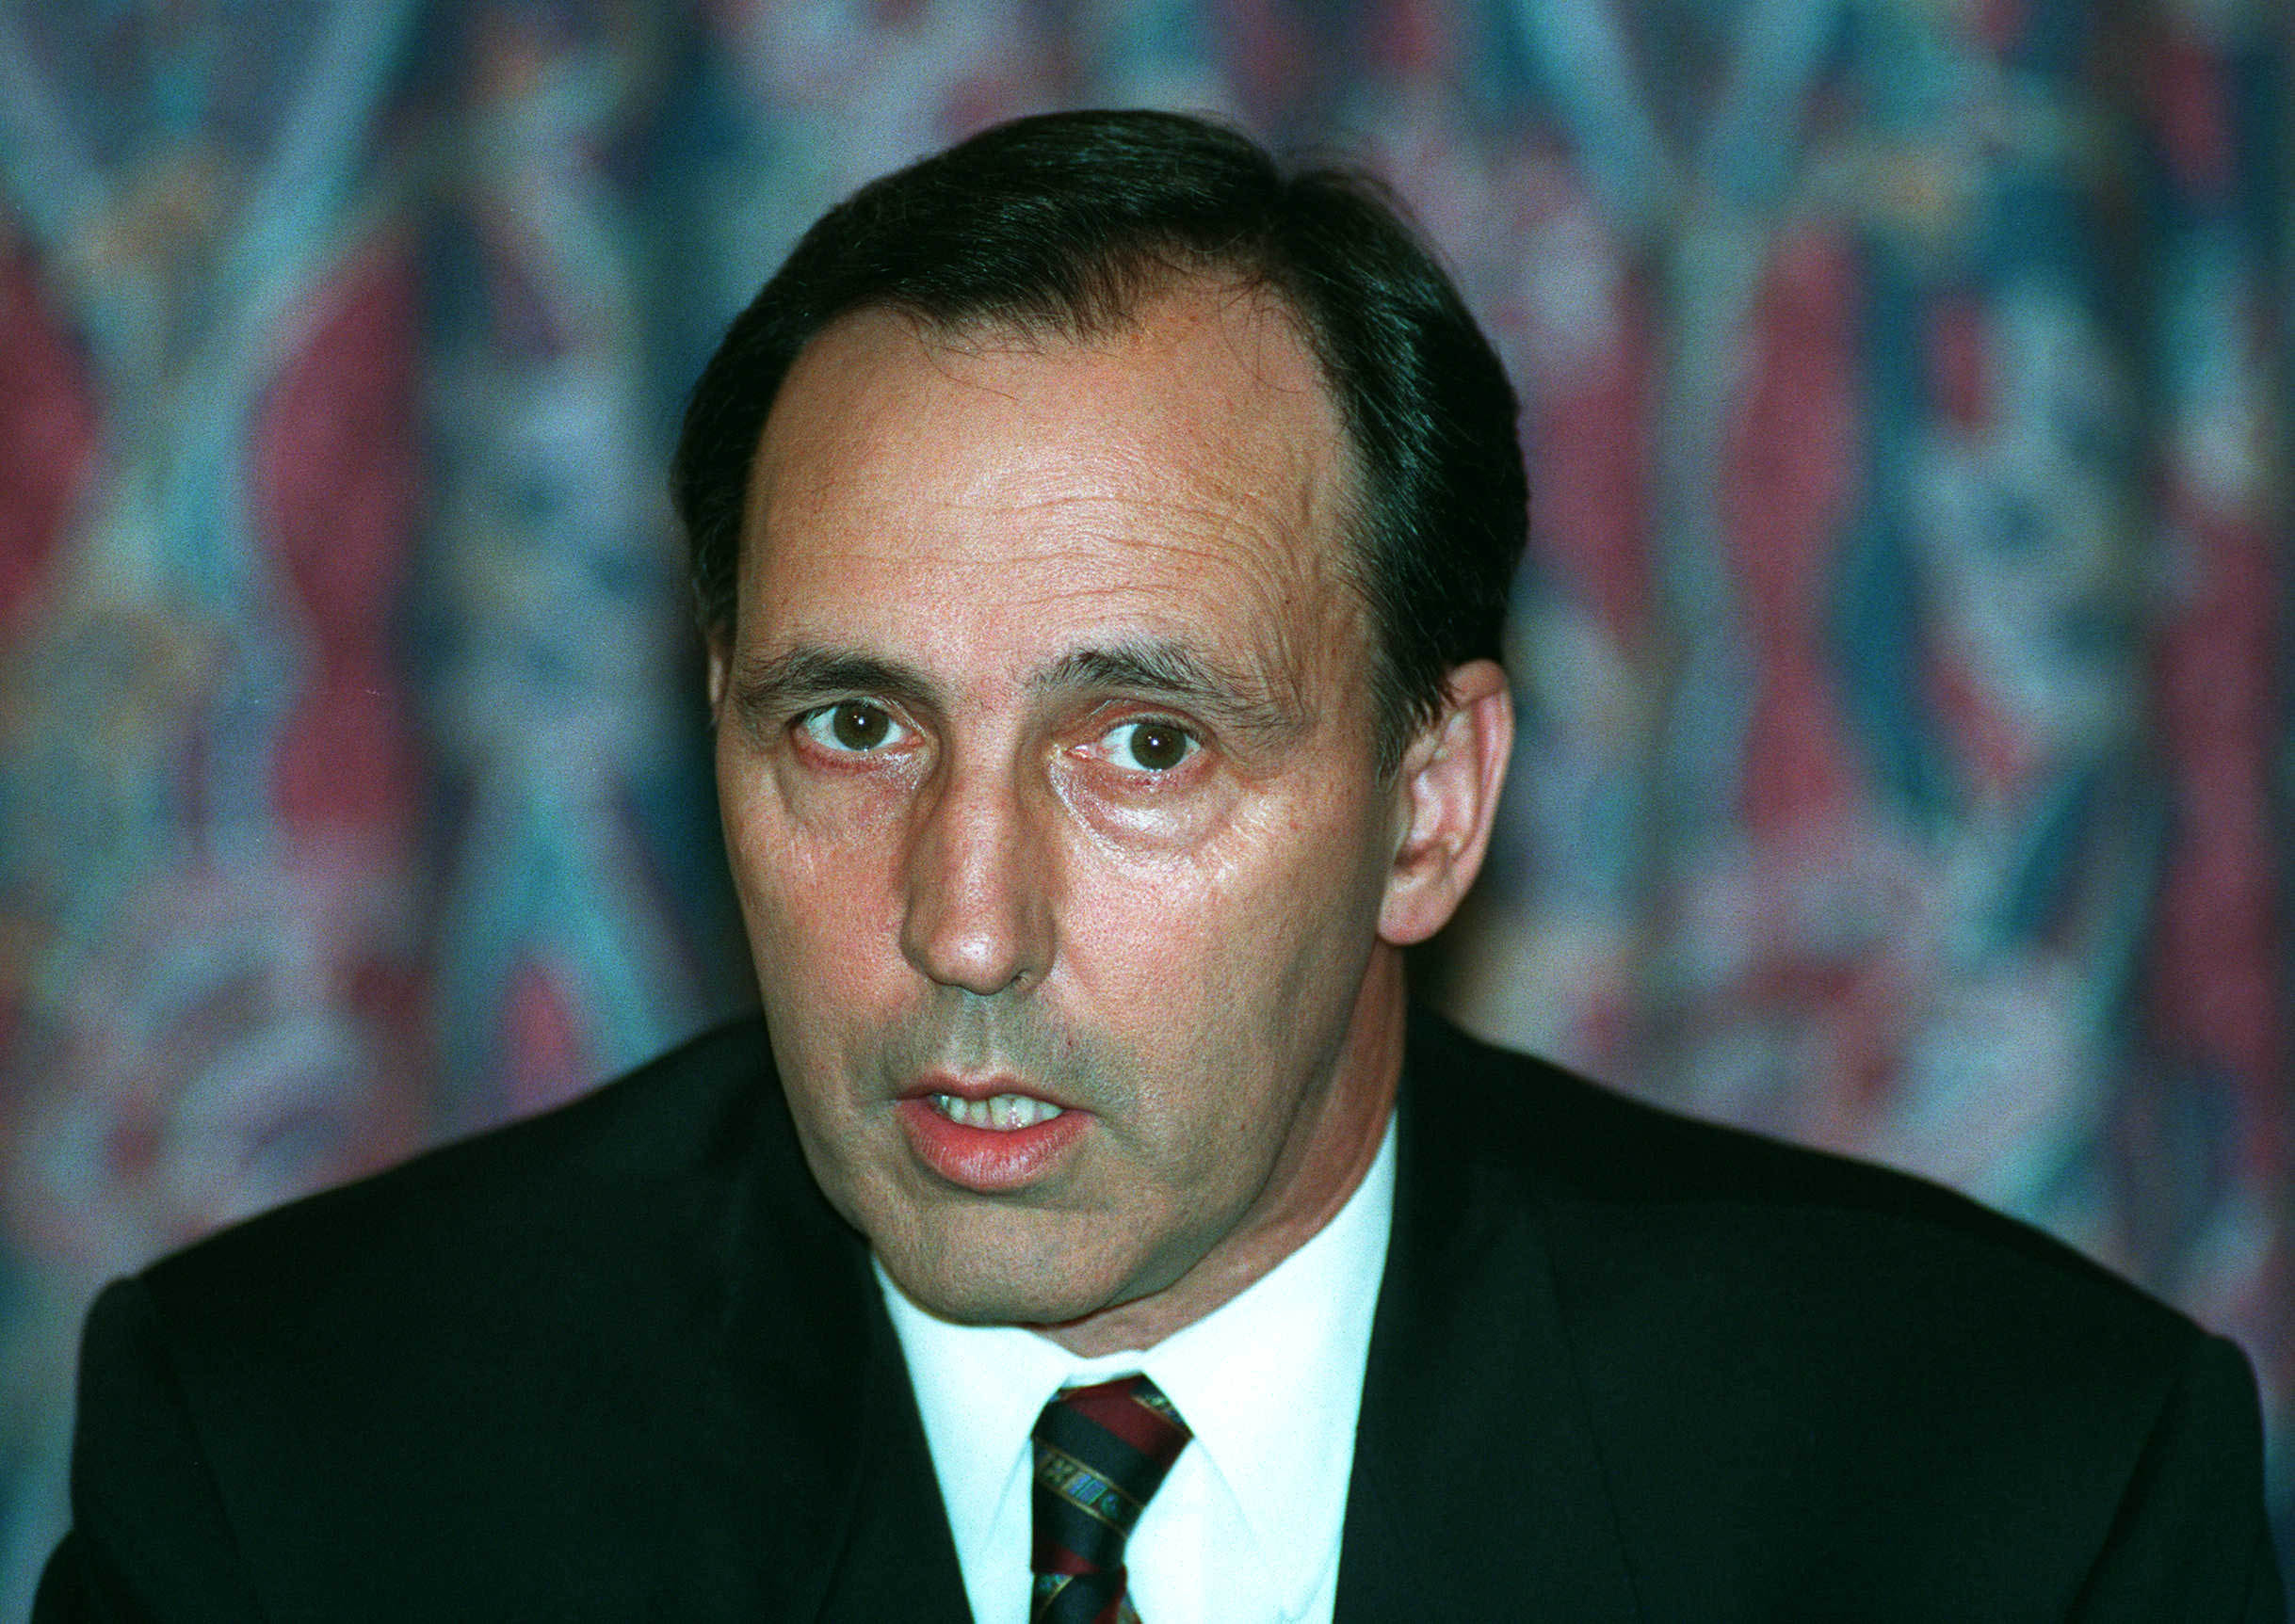 Here's the full Keating quote Ross couldn't remember this morning